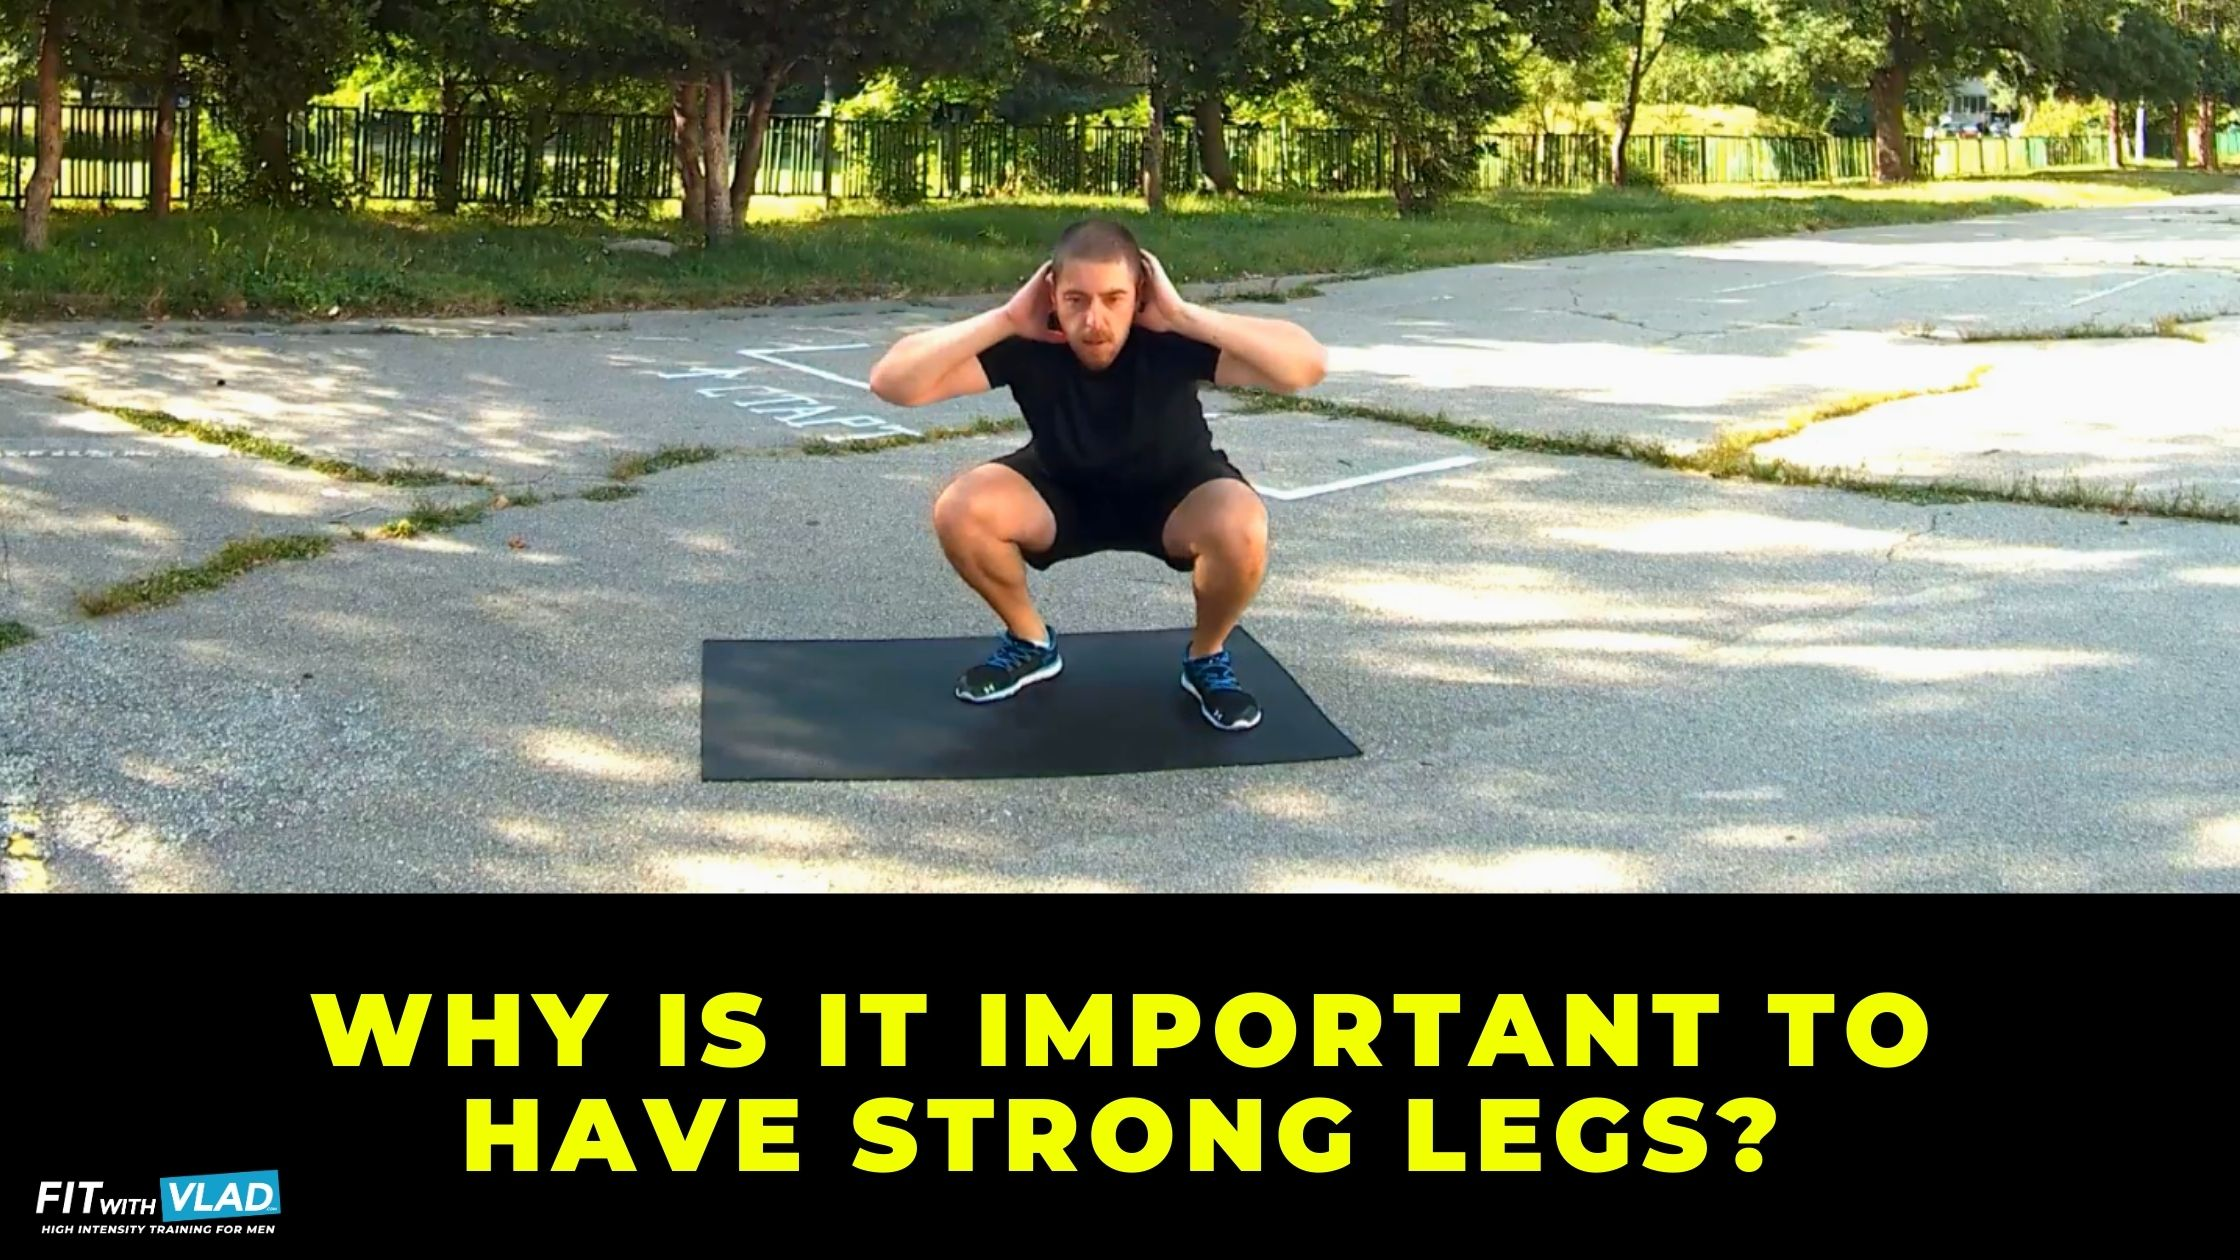 Why is it important to have strong legs